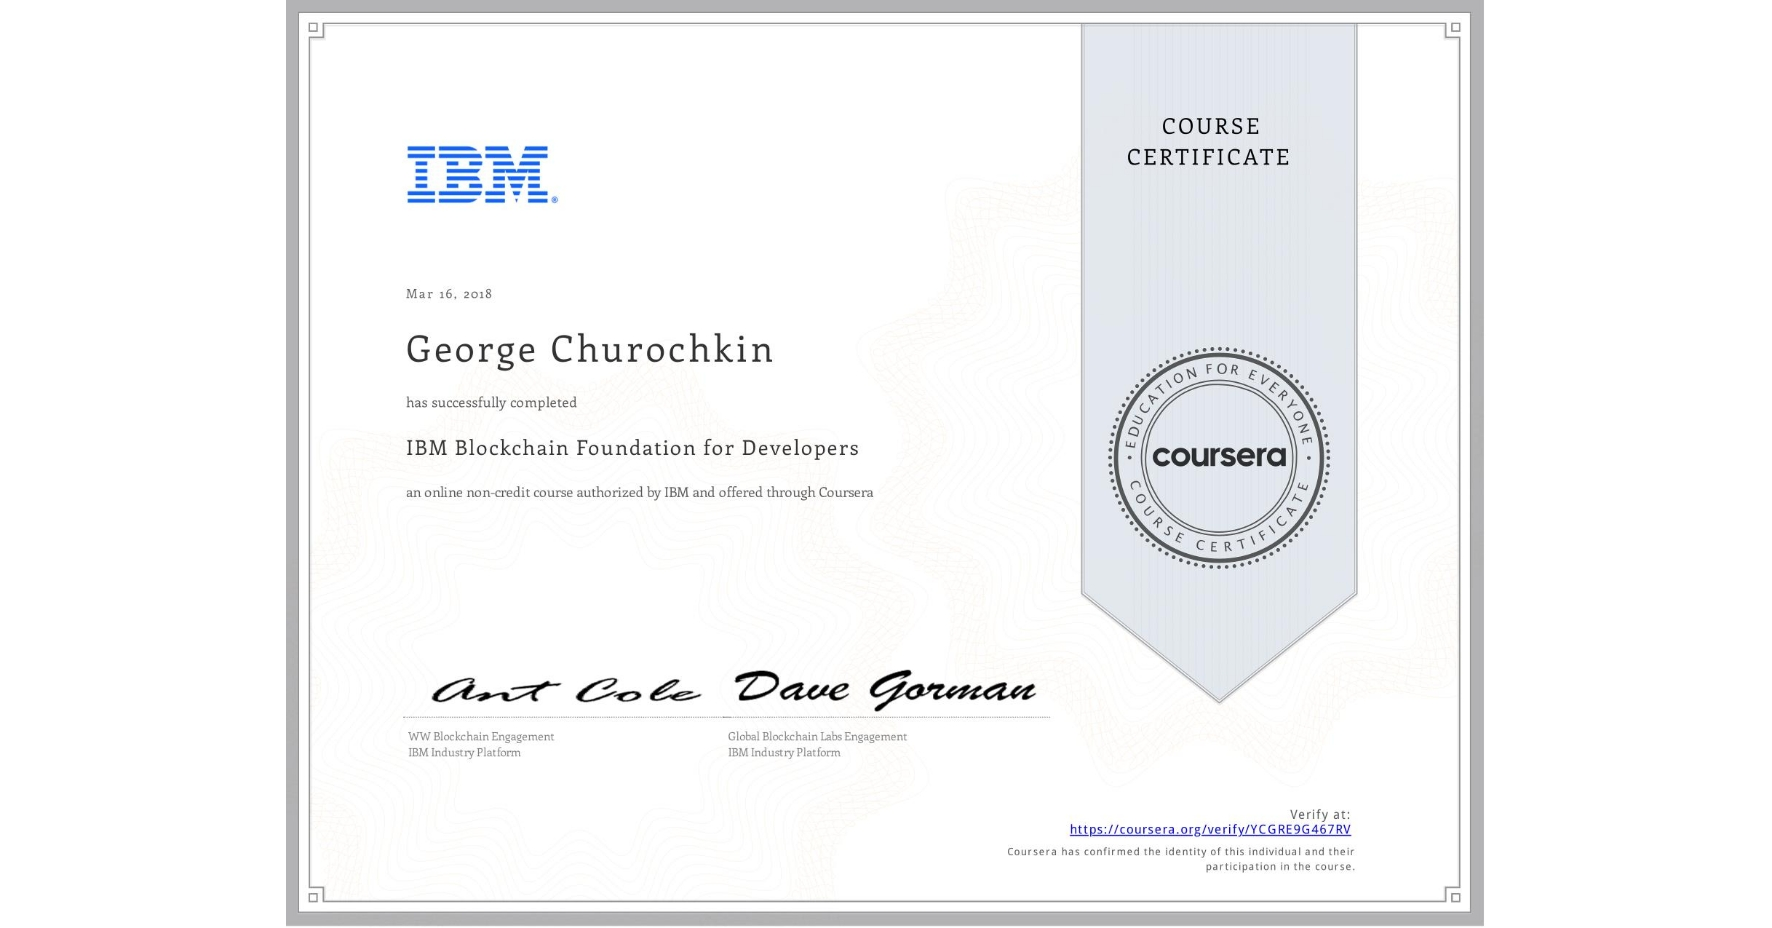 View certificate for Георгий Чурочкин, IBM Blockchain Foundation for Developers, an online non-credit course authorized by IBM and offered through Coursera